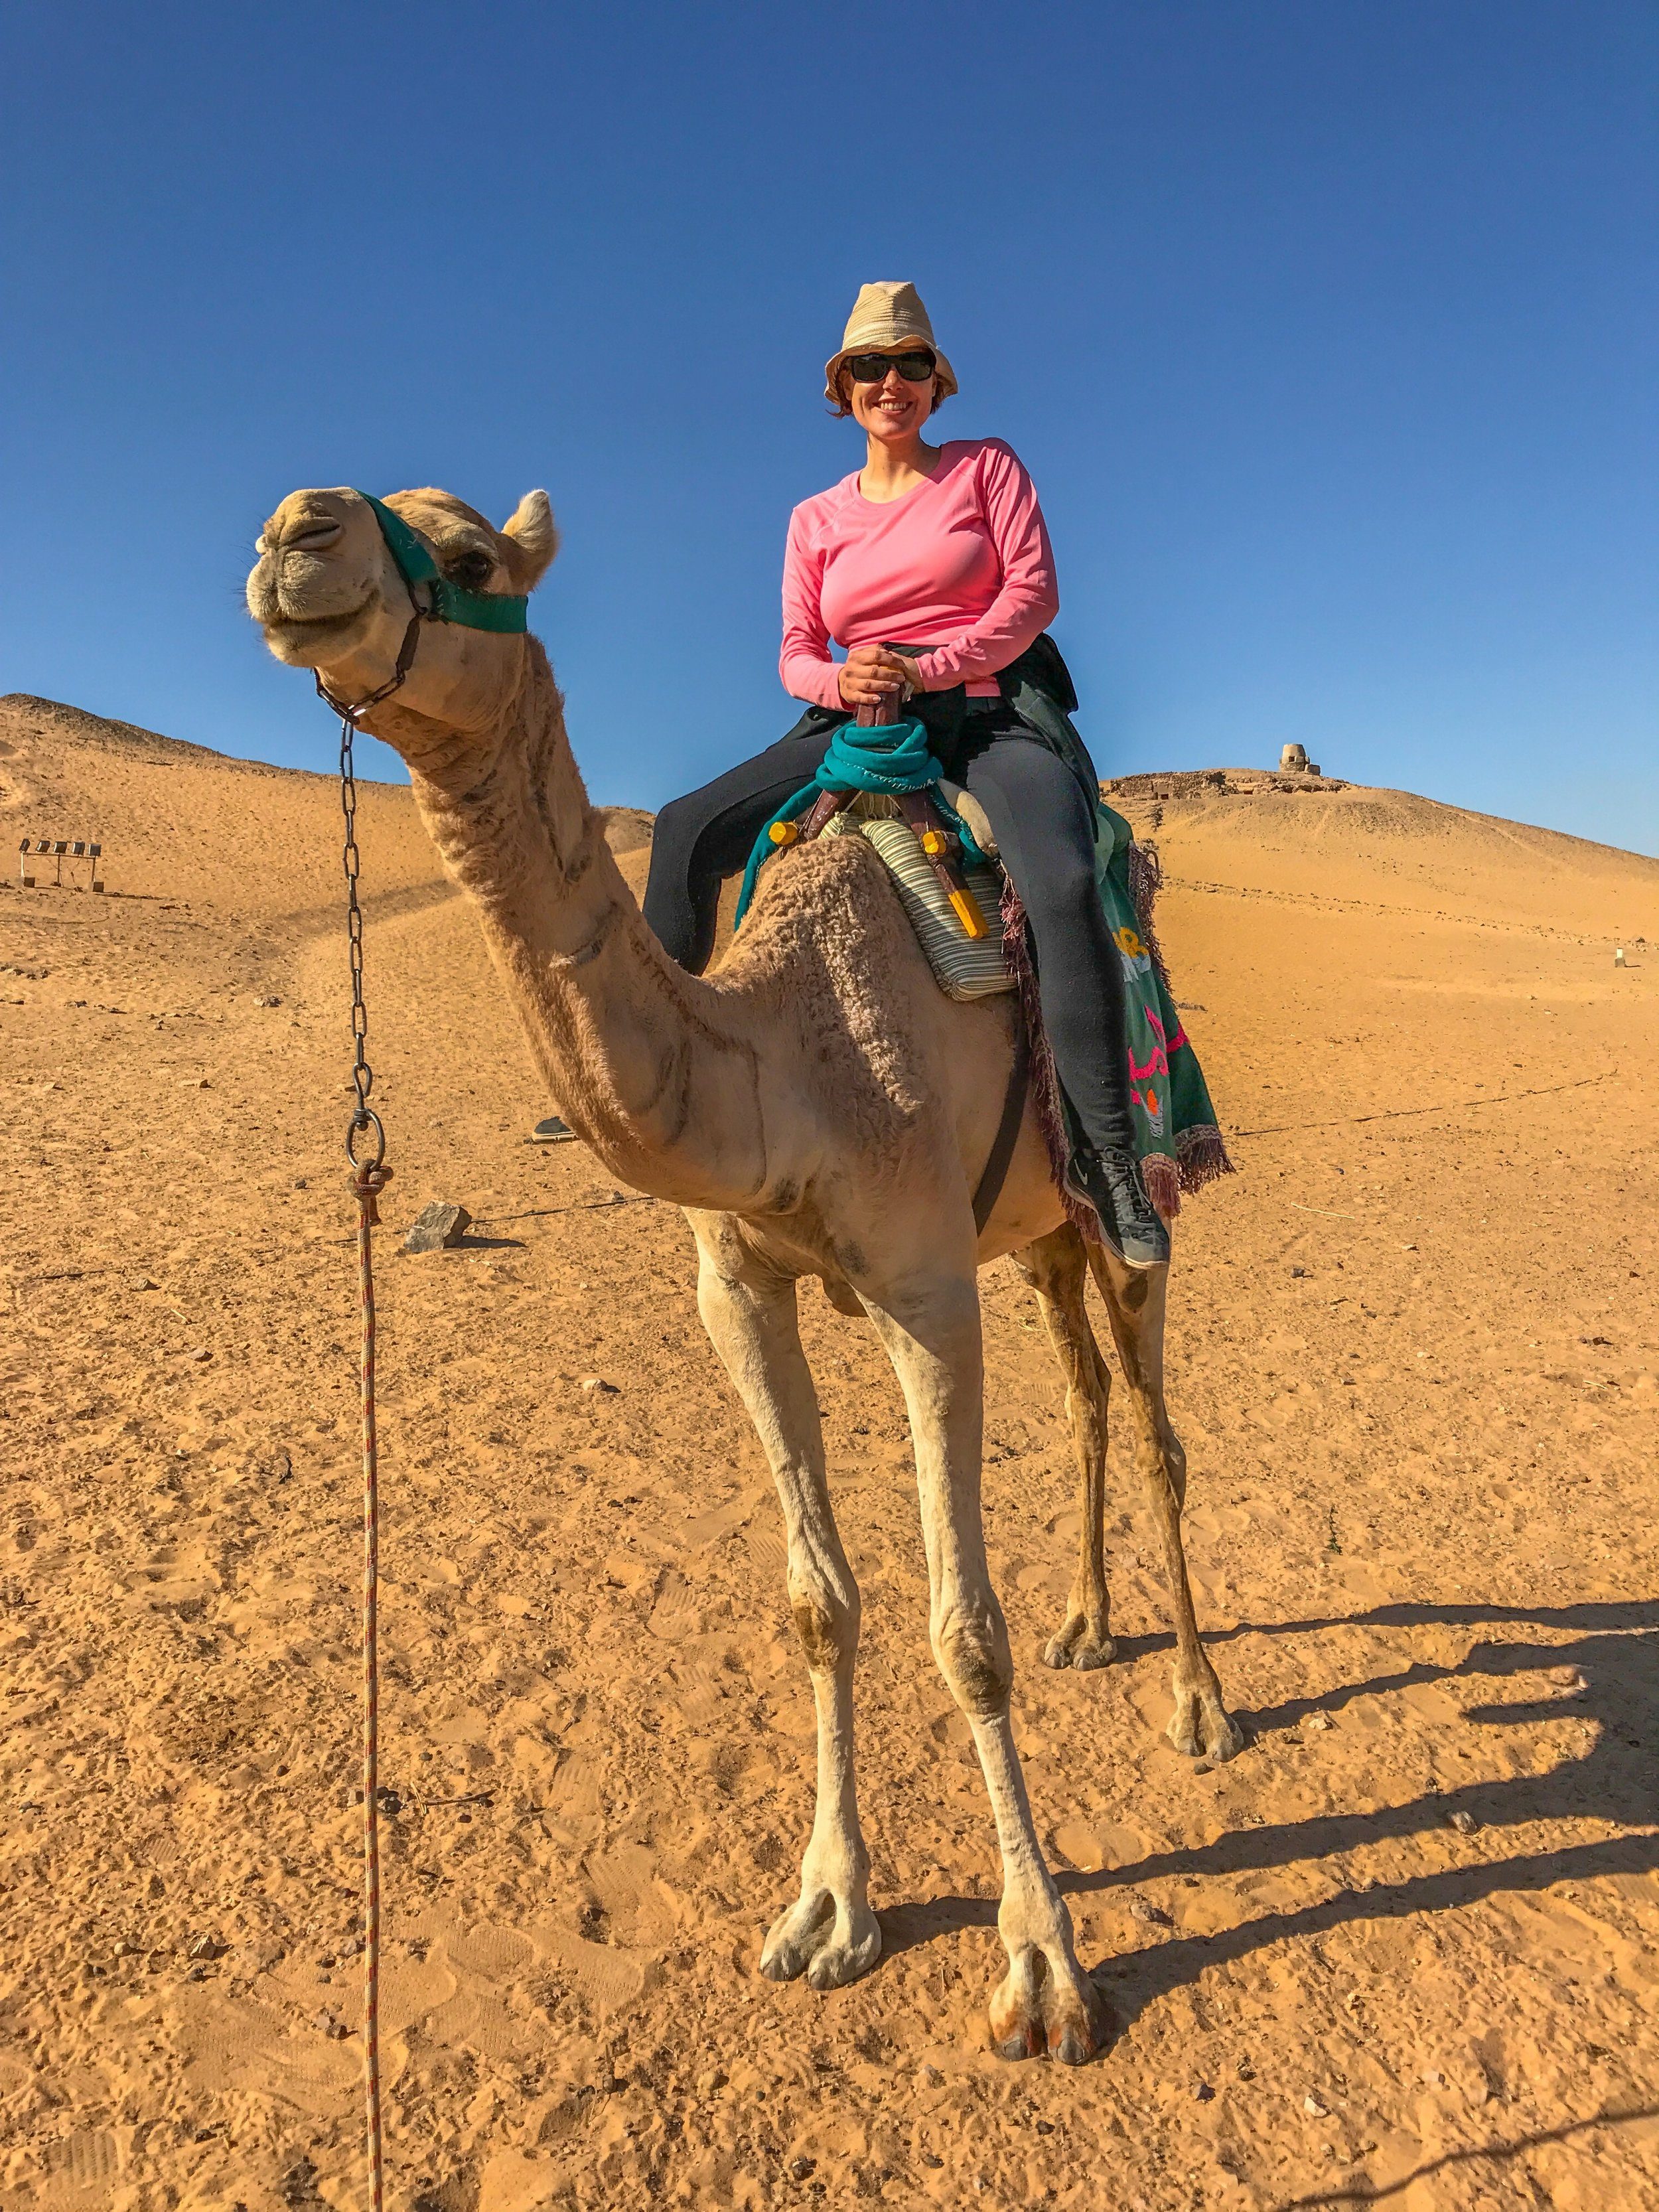 The camel that threw me into the Sahara